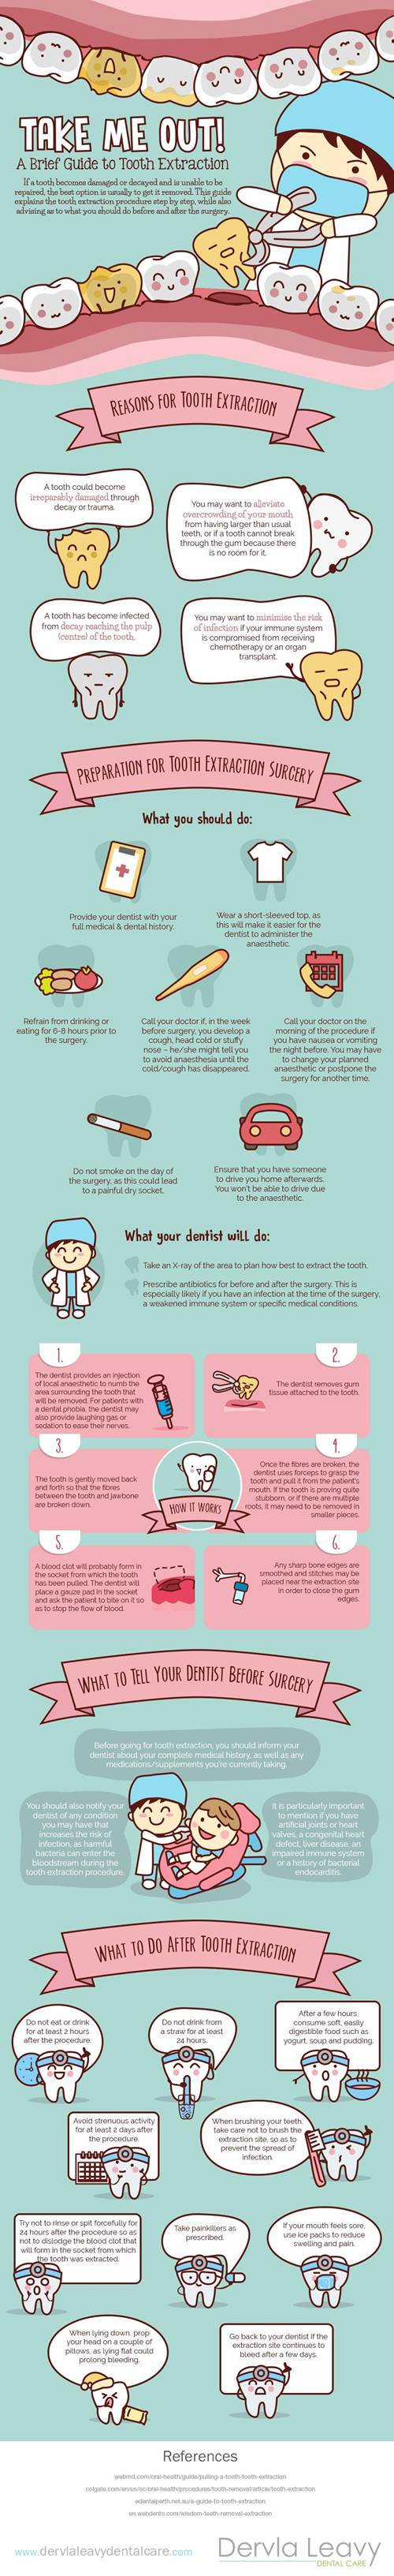 dervla-leavy-ig-a-brief-guide-to-tooth-extraction